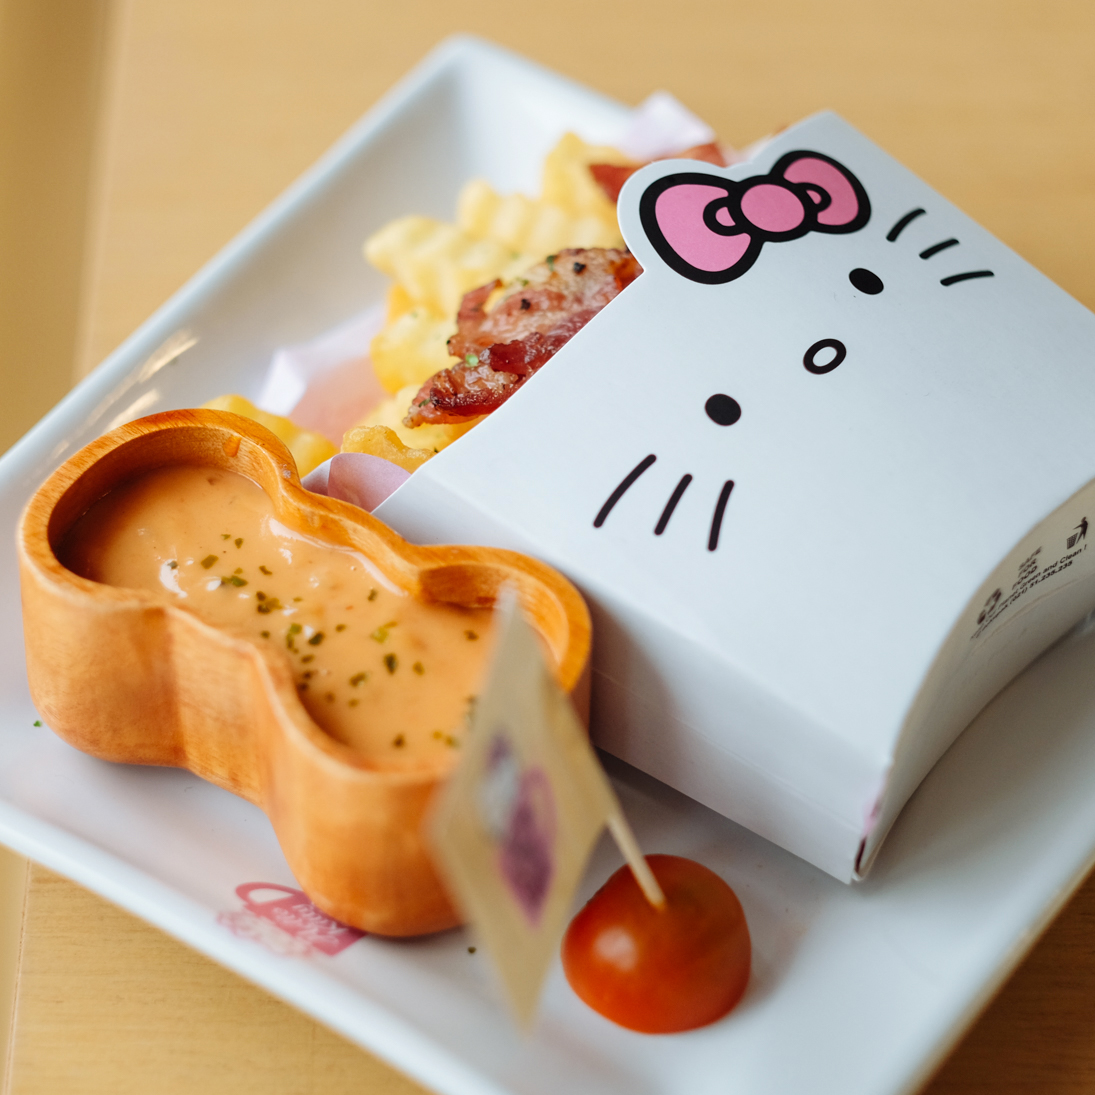 Cuisine Hello Kitty Ecoiffier Hello Kitty Cafe Pantai Indah Kapuk Jakarta